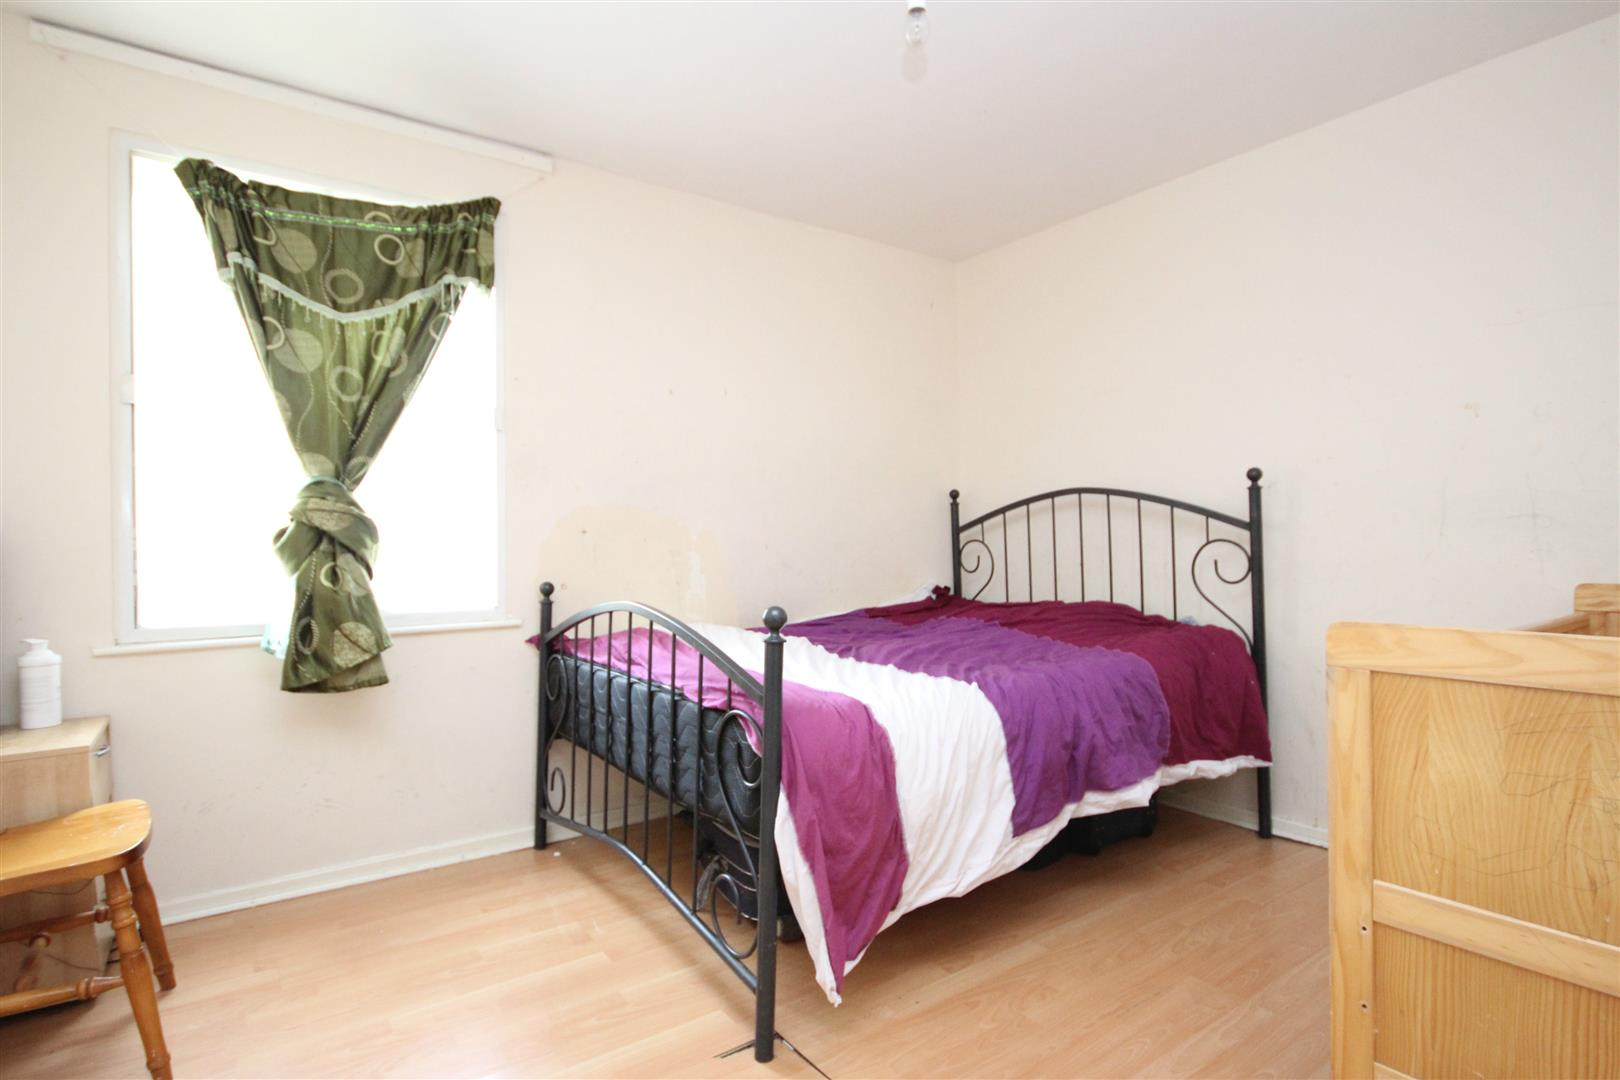 2 Bedrooms Flat for sale in Chelsea Close, London NW10 8XD